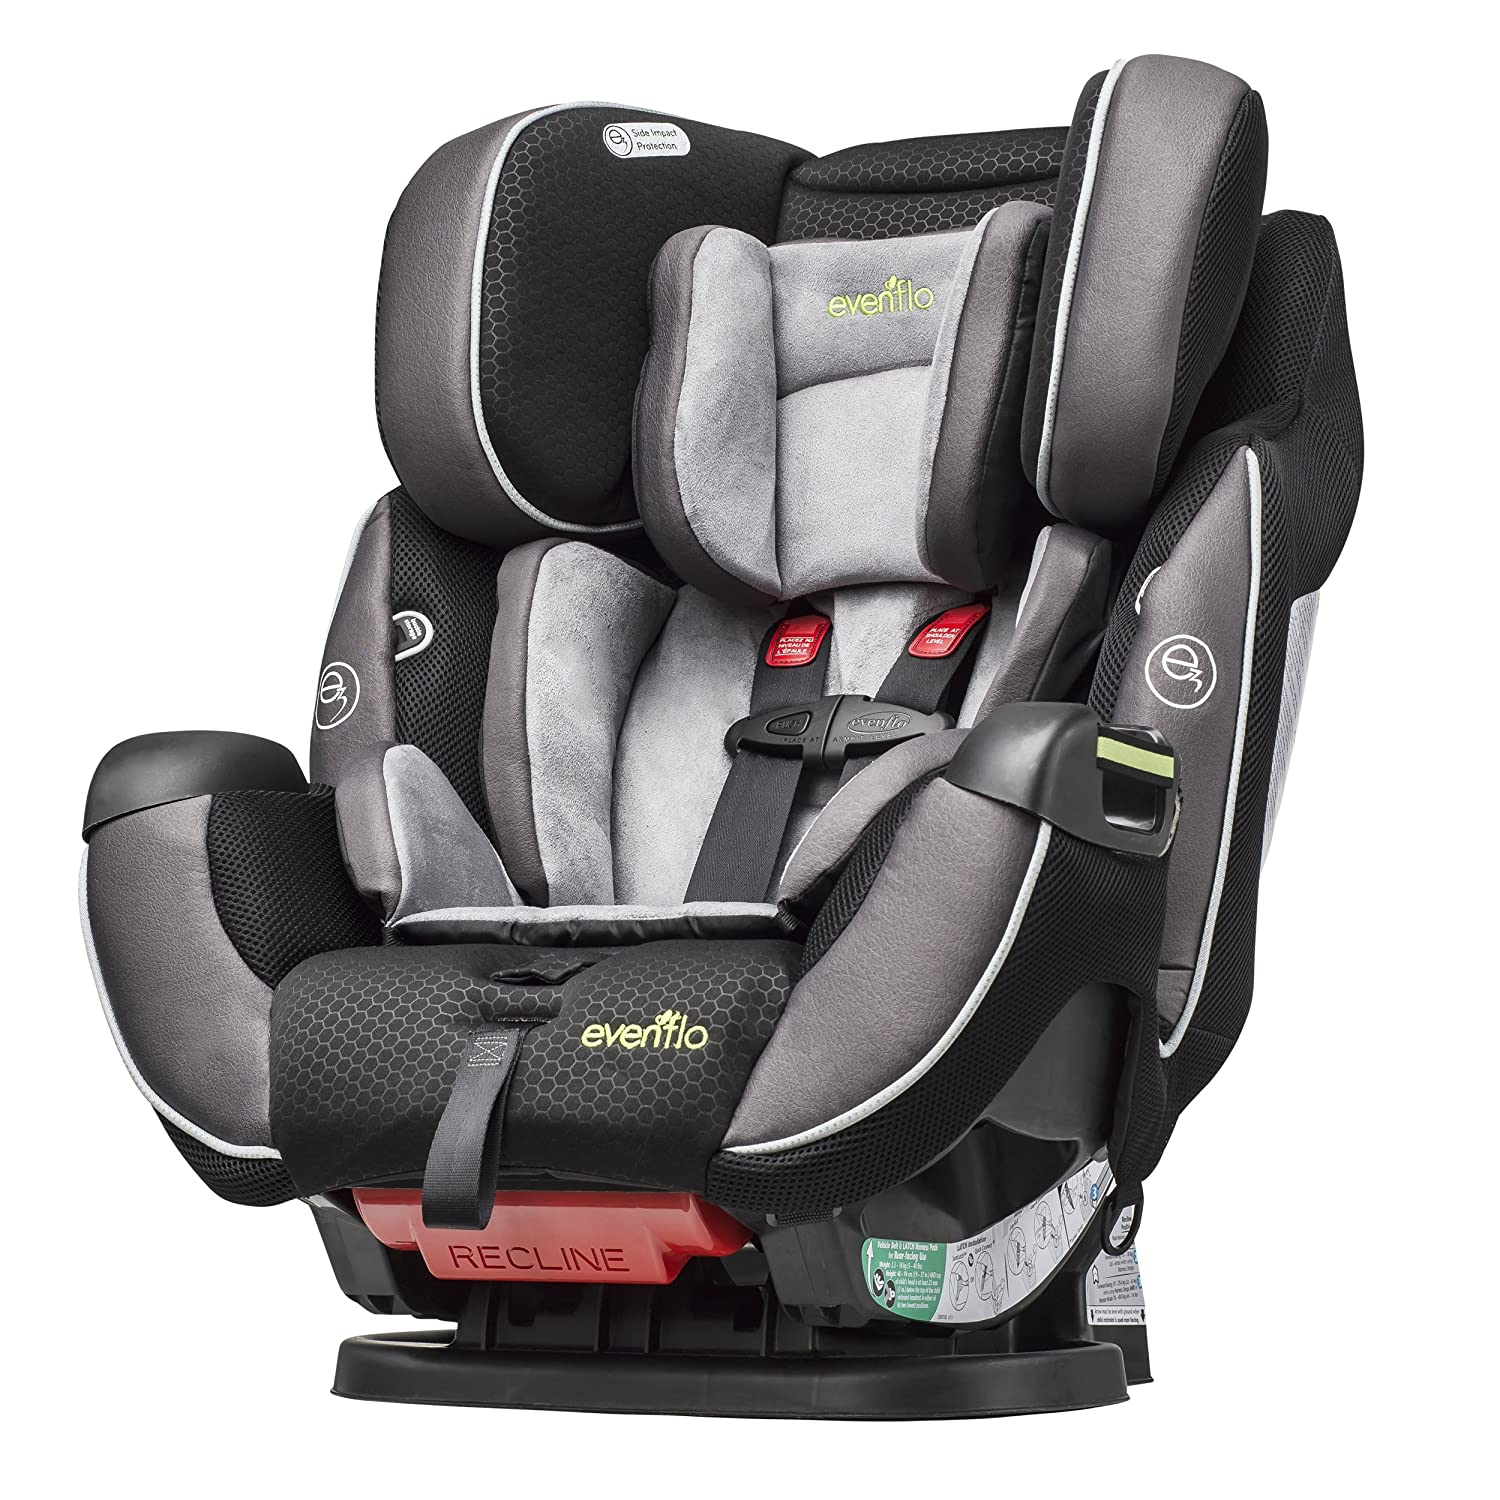 Evenflo Is Another Top Rated Brand When It Comes To Car Seats Their Symphony Elite All In One Convertible Seat A Proof For That And Practically